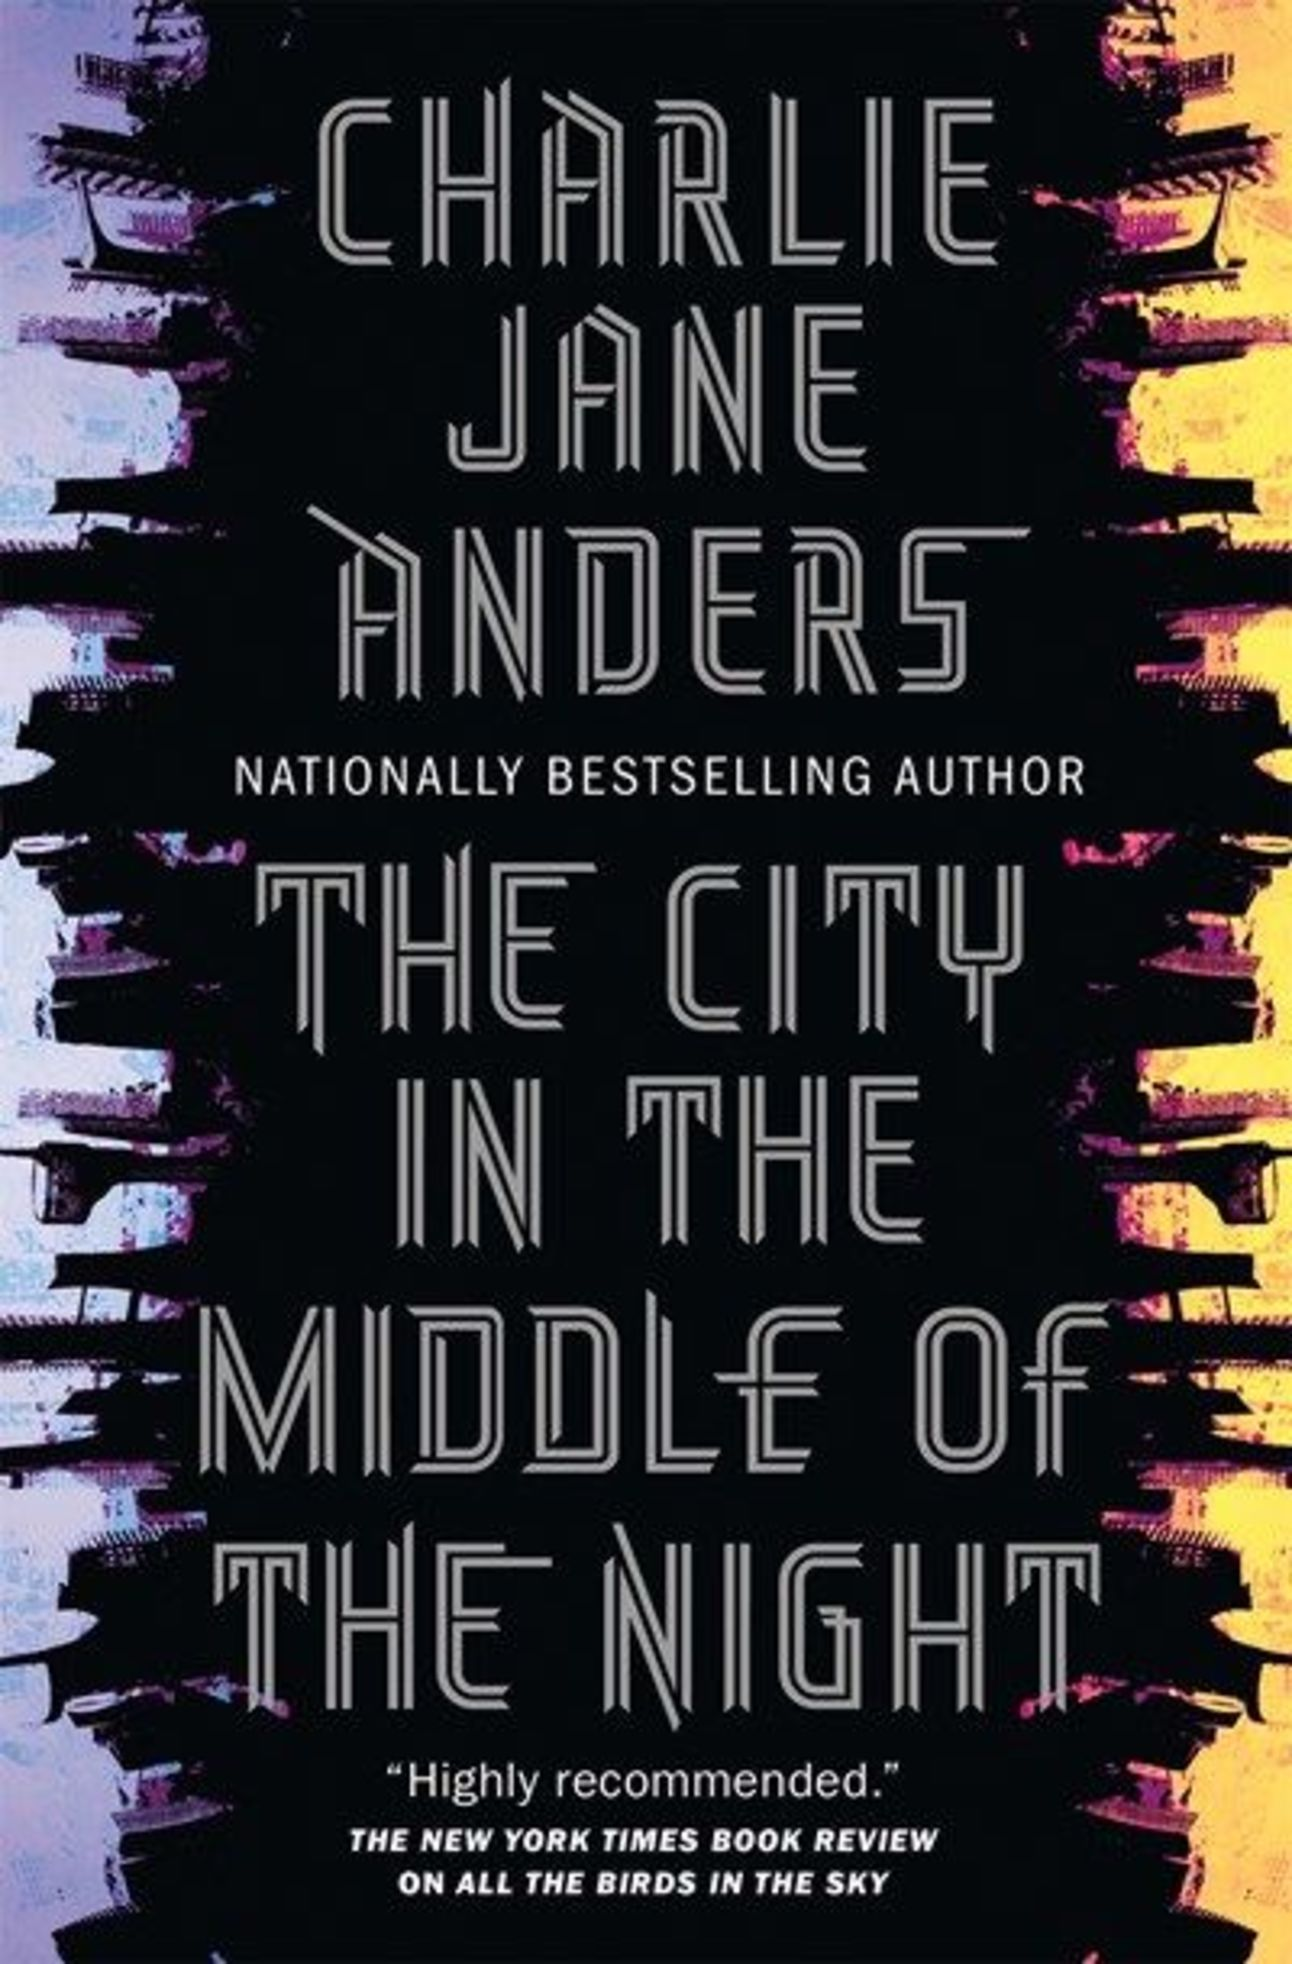 city-in-the-middle-of-then-night